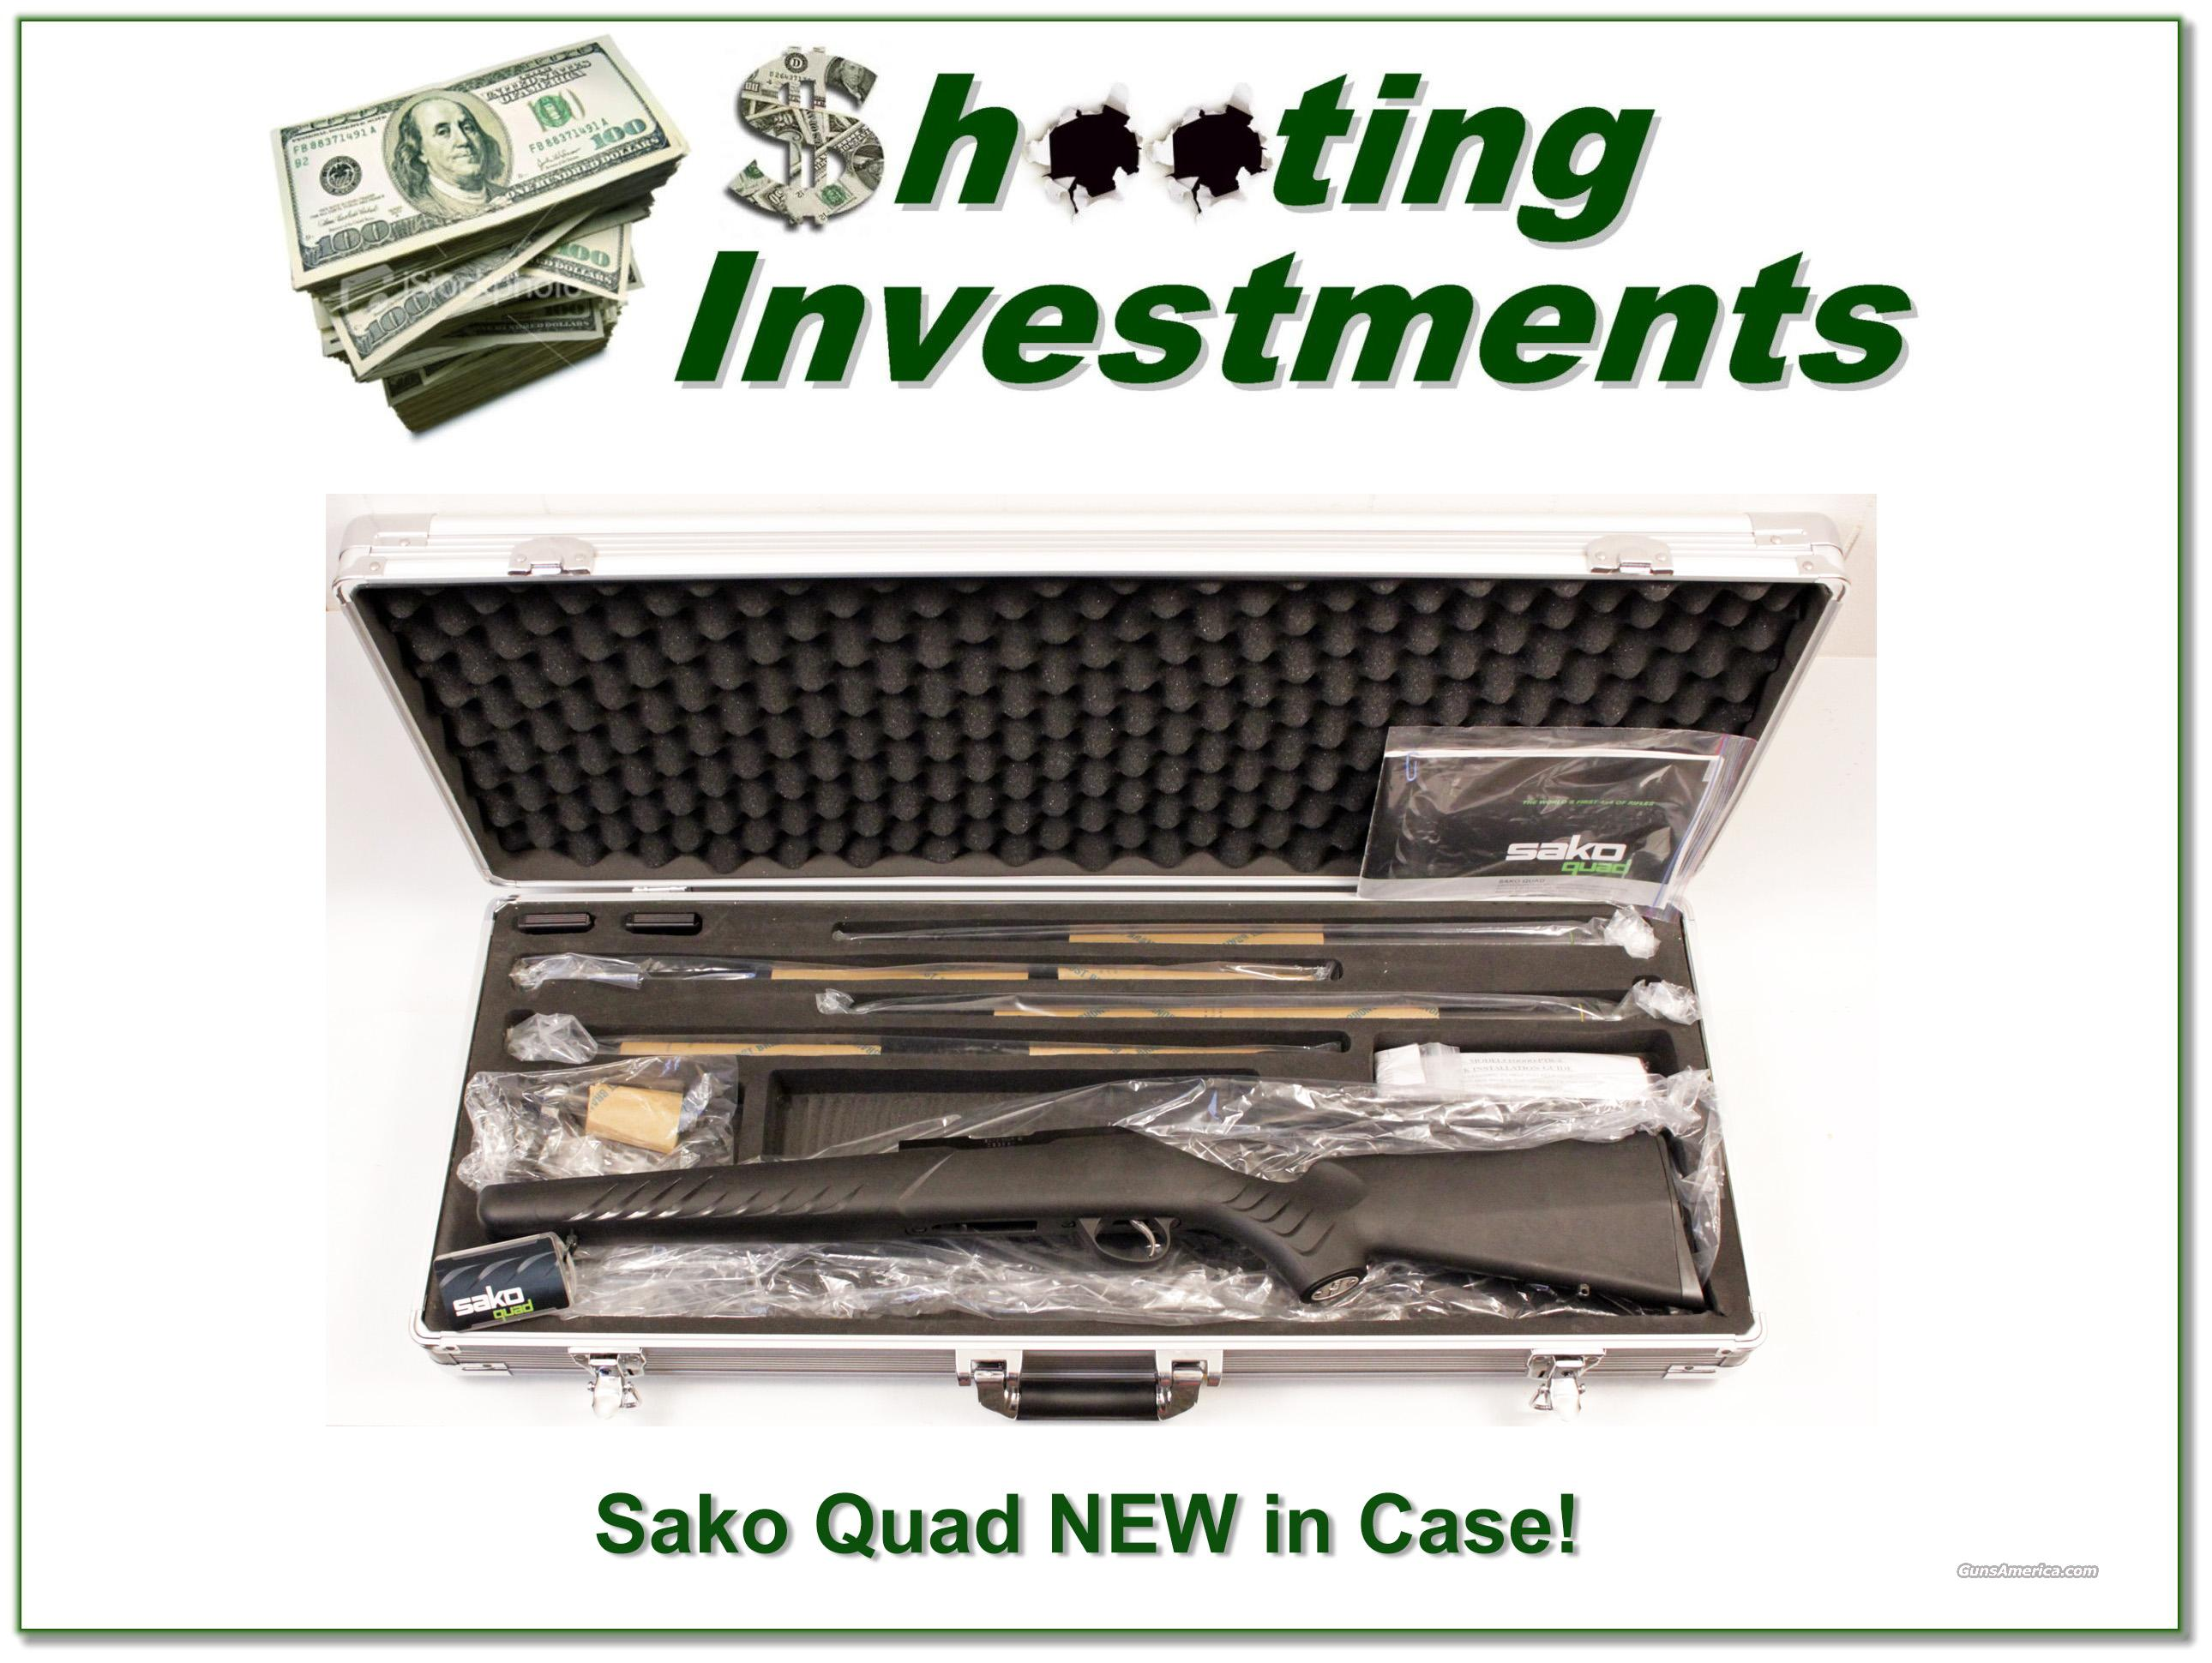 Sako Quad 4 barrel set, 22LR, 22 Mag, 17 Mach2, 17 HMR, NEW!  Guns > Rifles > Sako Rifles > Other Bolt Action